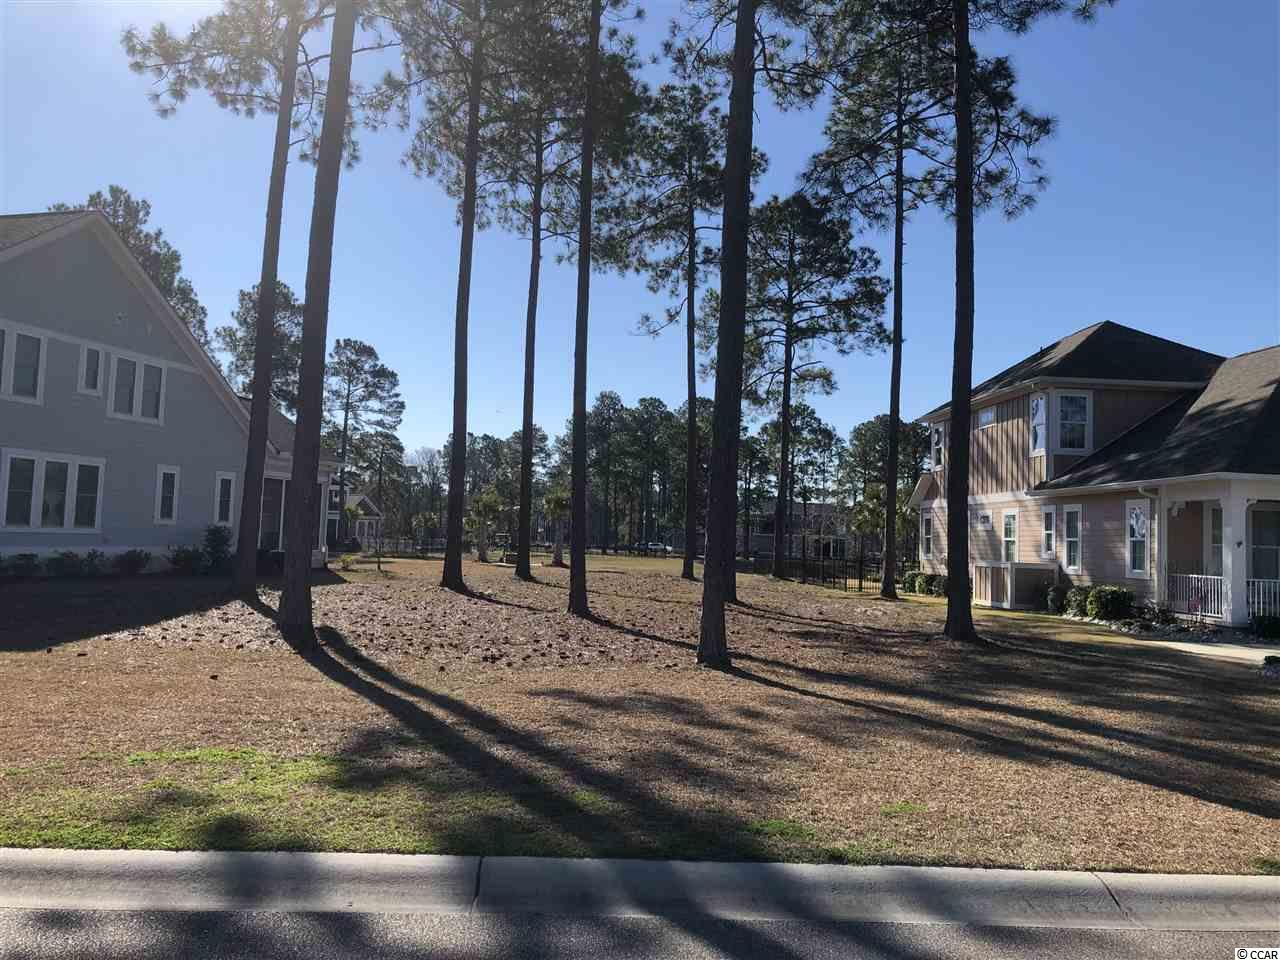 This is a spectacular lot located on the water!  This lot is in one of the most desired communities in Carolina Forest, Waterbridge. Come build your dream home in paradise with no time frame to build. This lot is a short walk to one of the top community amenities throughout the Grand Strand!! The Amenities has a village style clubhouse, multiple resort style pools, swim-up refreshment bar, meeting areas, multiple tennis courts, Sand-volleyball courts, lounging, fitness center, basketball courts, fire-pits, 60 plus acre lake, as well as boat storage and boat launch. Waterbridge is in the Carolina Forest School district,which is one of the top award winning school districts in South Carolina. Waterbridge is a gated community surrounded by 120 acres of protected woodlands. Throughout the community you will have panoramic lake views. An amazing amenities center like no other in any community. Close to restaurants, shopping and the sandy beaches of Myrtle Beach. Come enjoy paradise, its waiting for you! Measurements and Sq. Ft. are estimated and not guaranteed and should be measured by buyer. Buyer is responsible for verification.